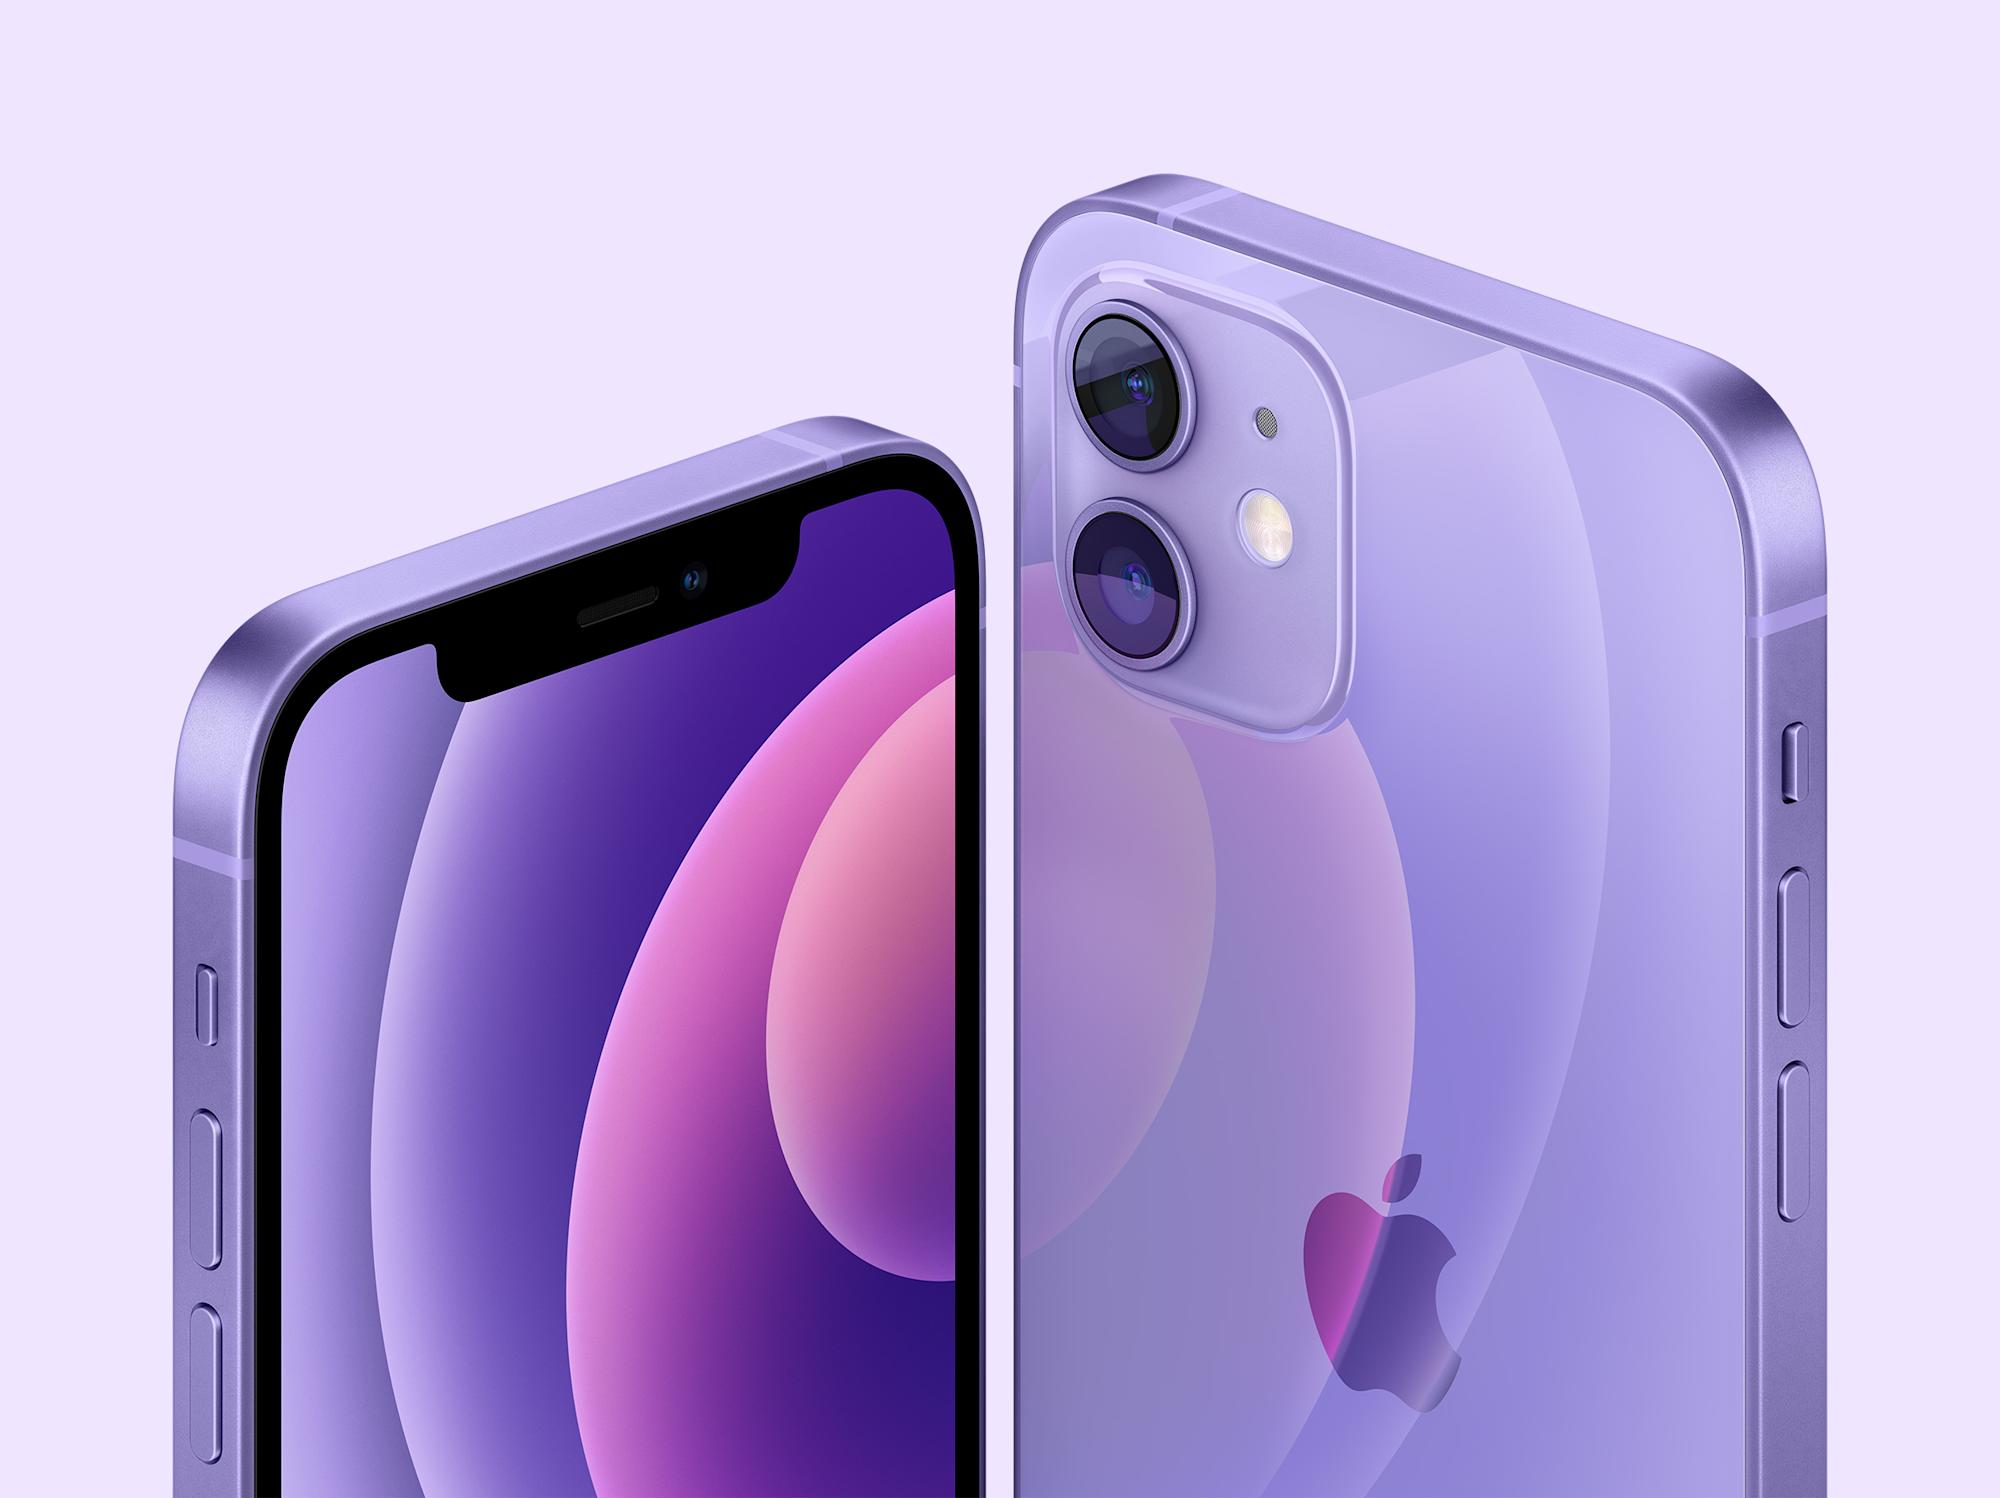 You can pre-order the purple iPhone 12 and iPhone 12 mini tomorrow